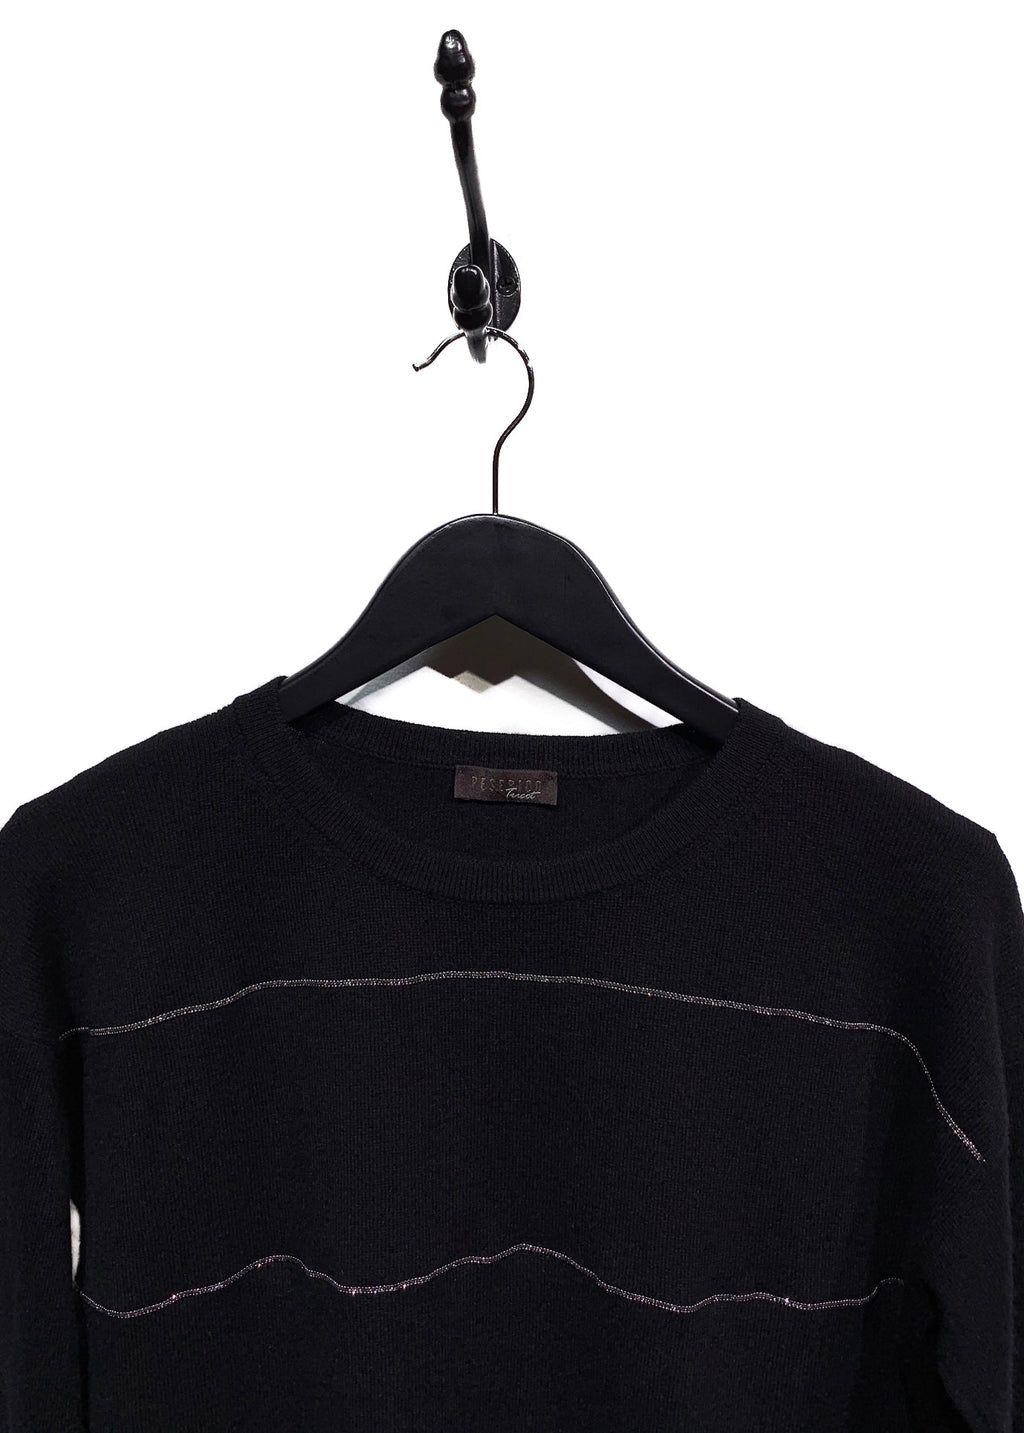 Peserico Tricot Black Wool Blend Beaded Trims Sweater